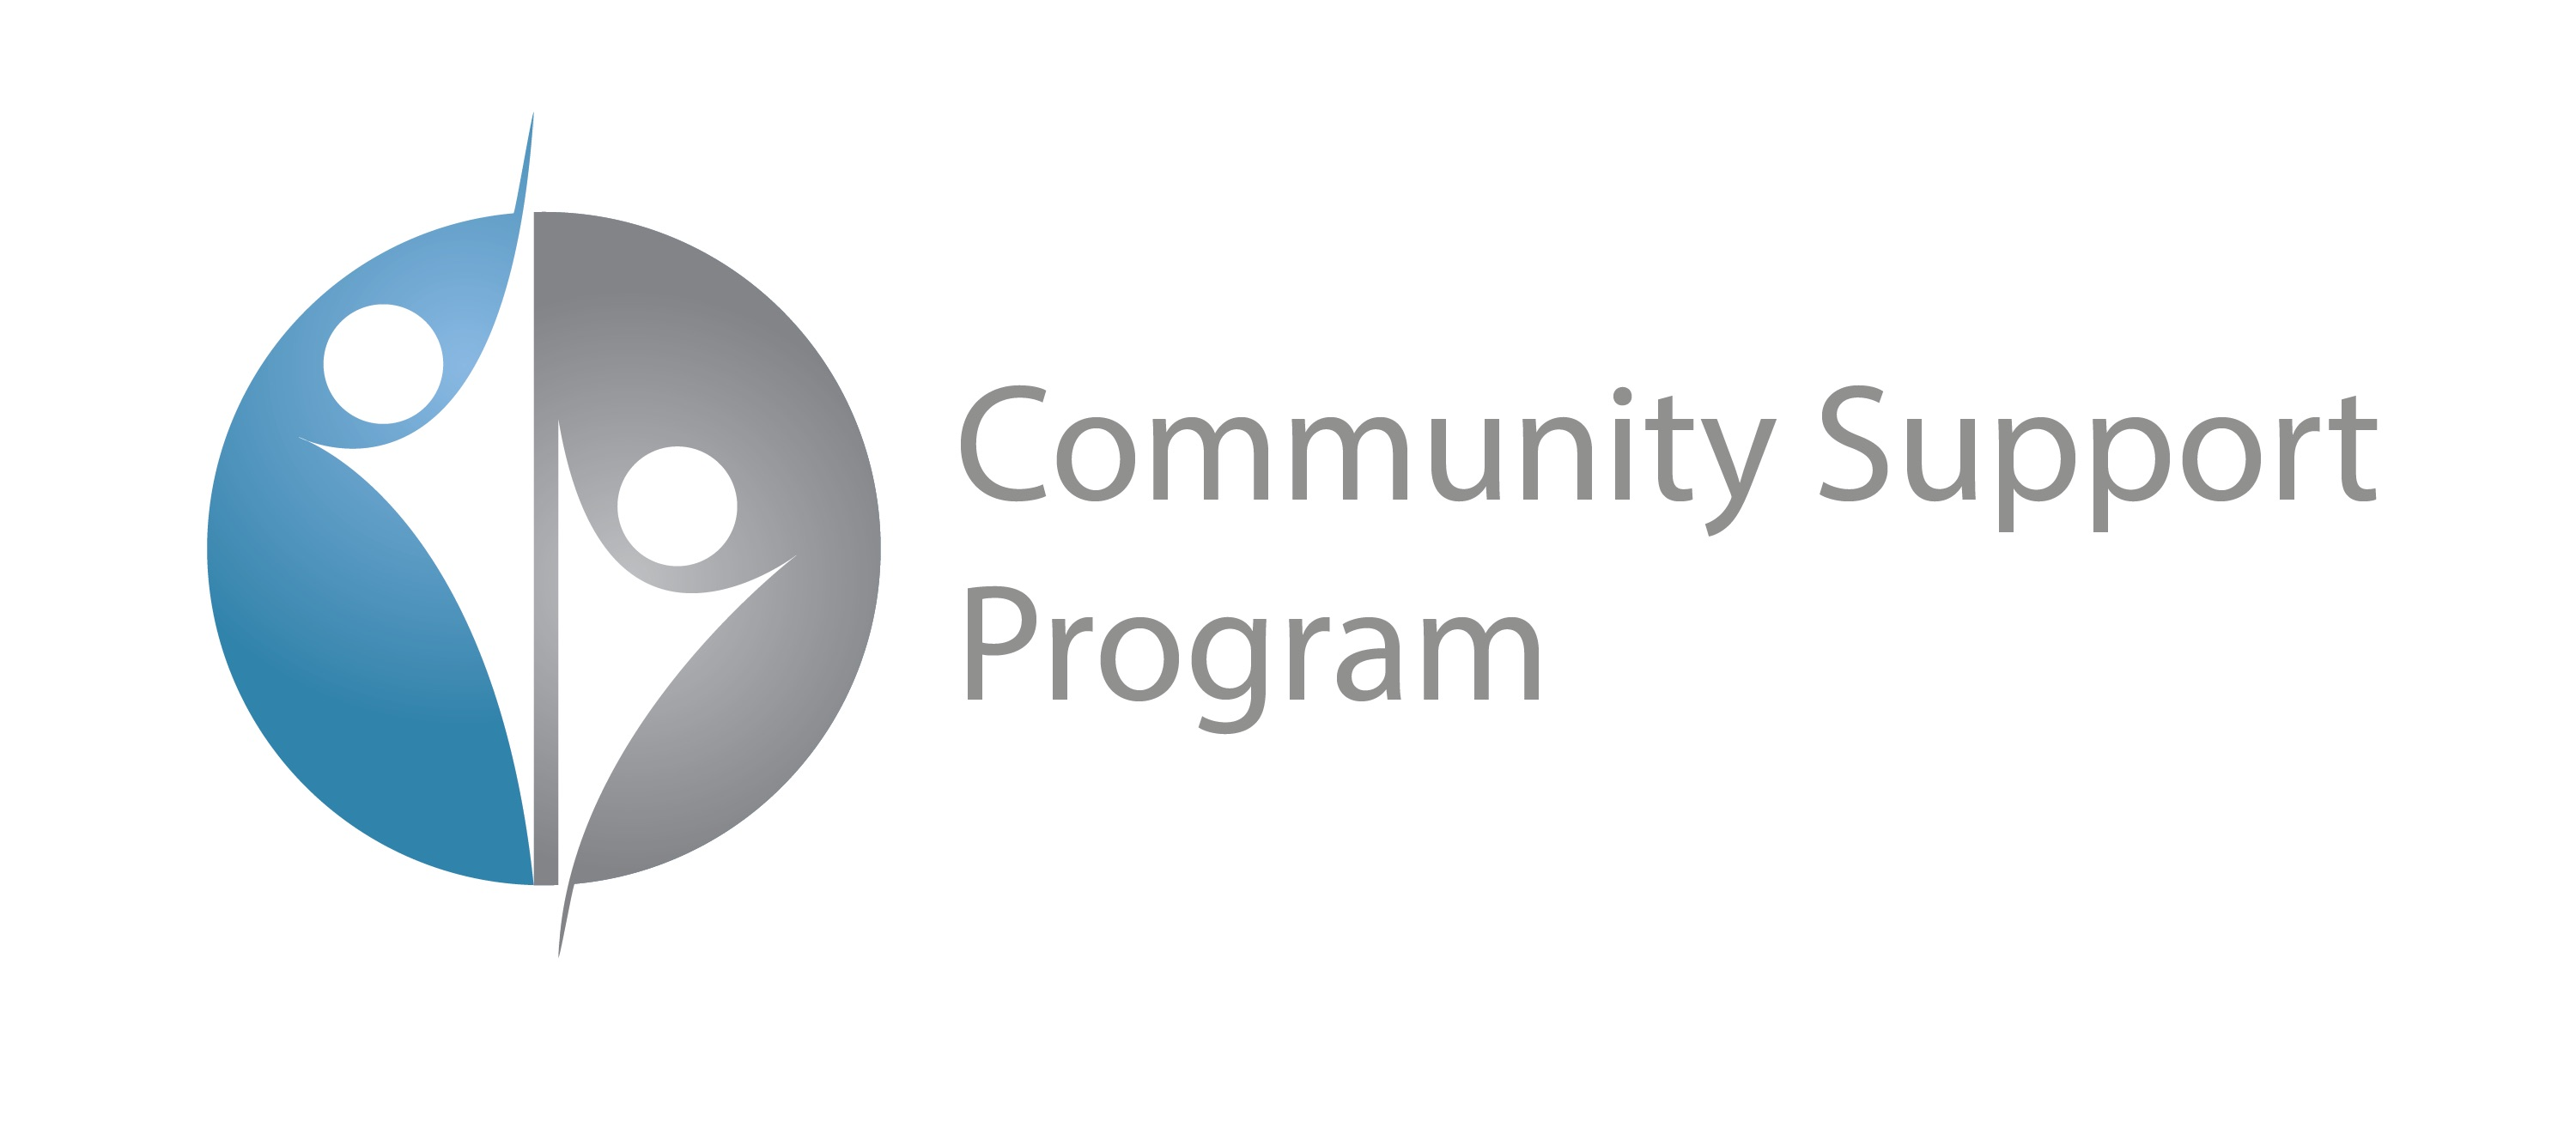 Community Support Program 3-01